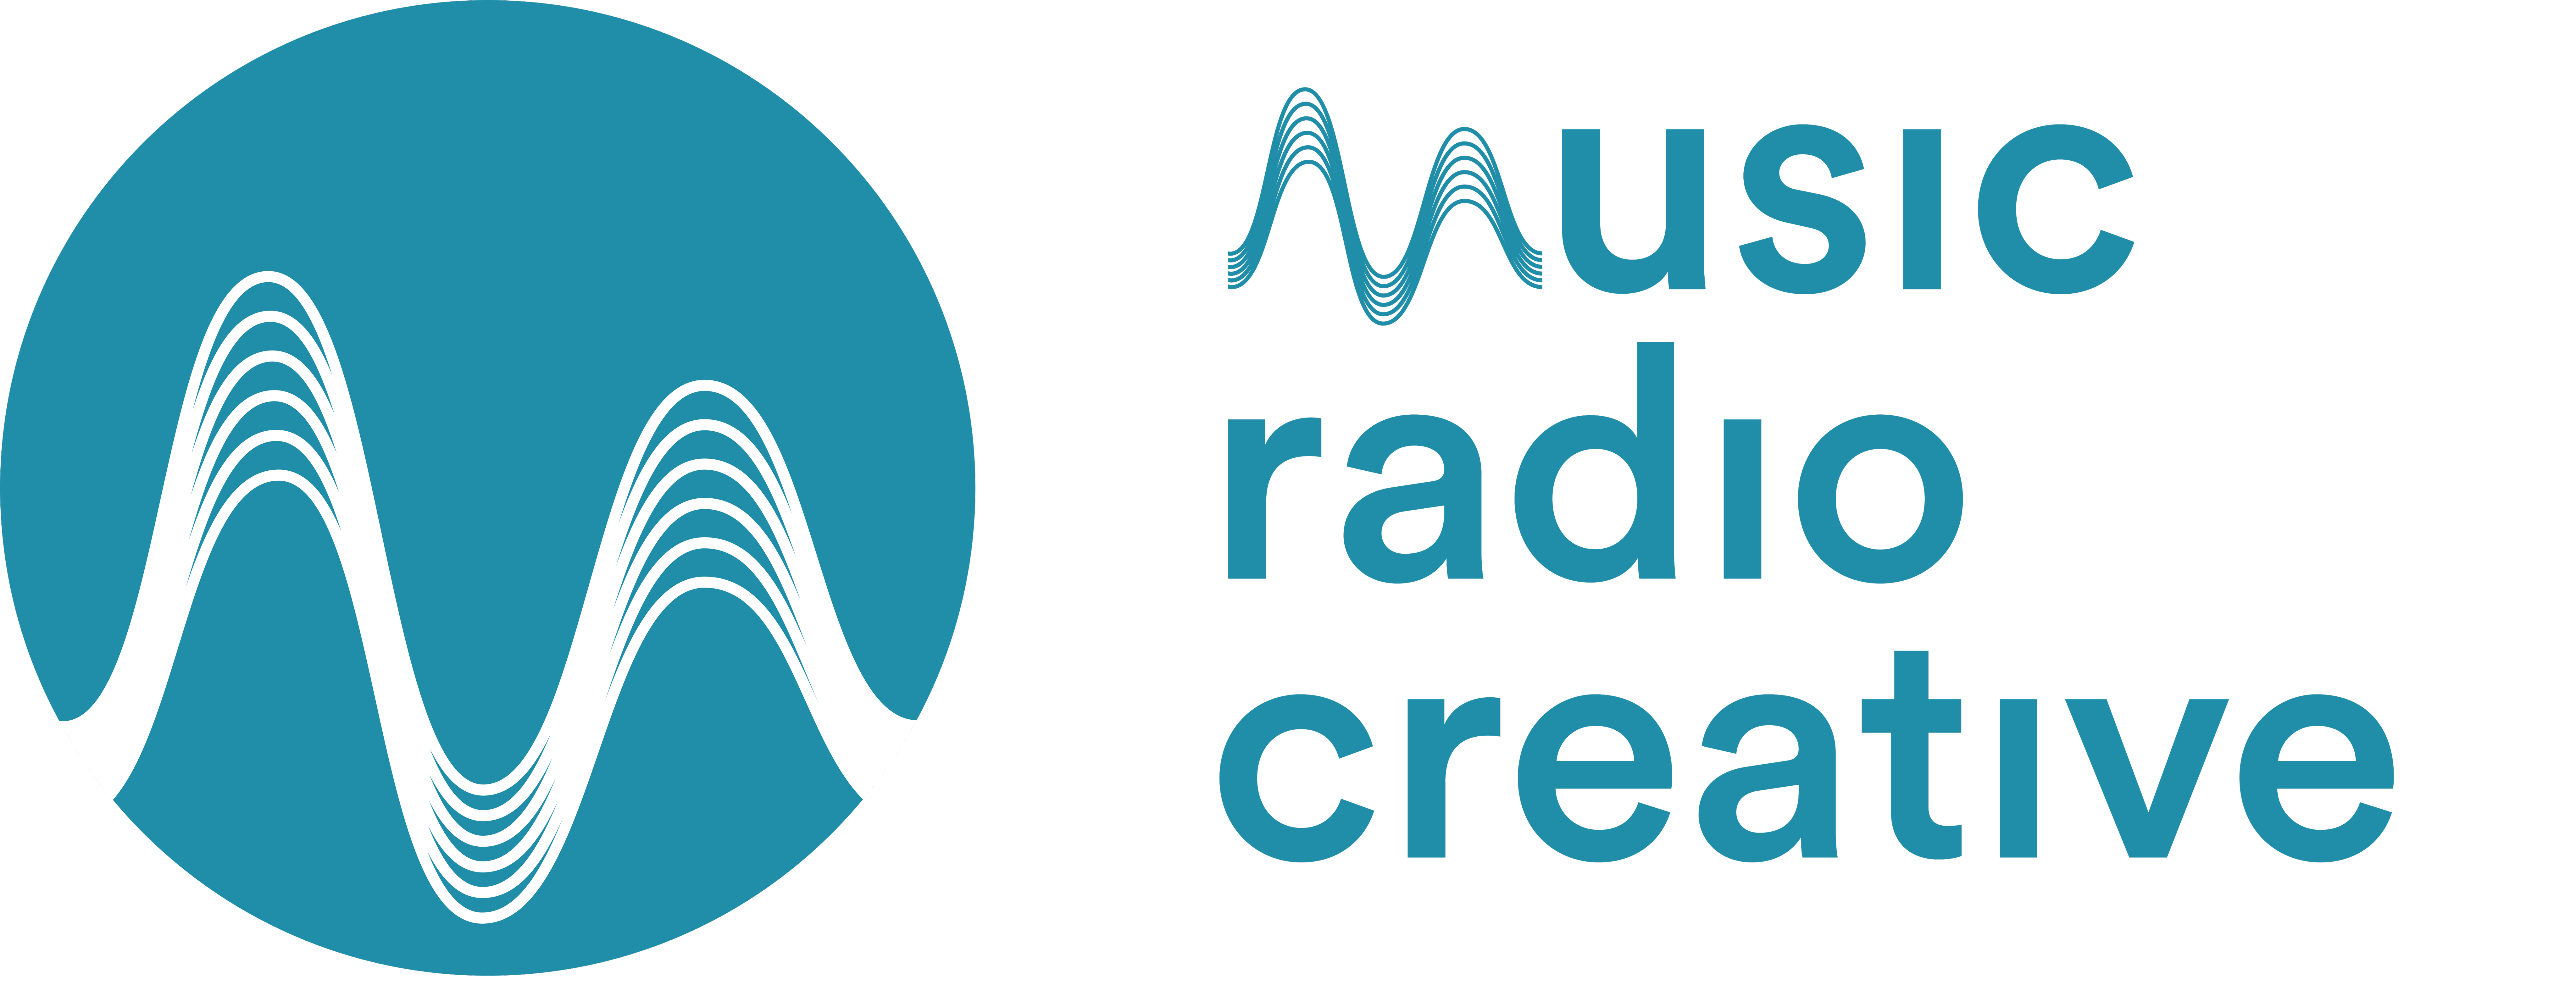 Music Radio Creative Community